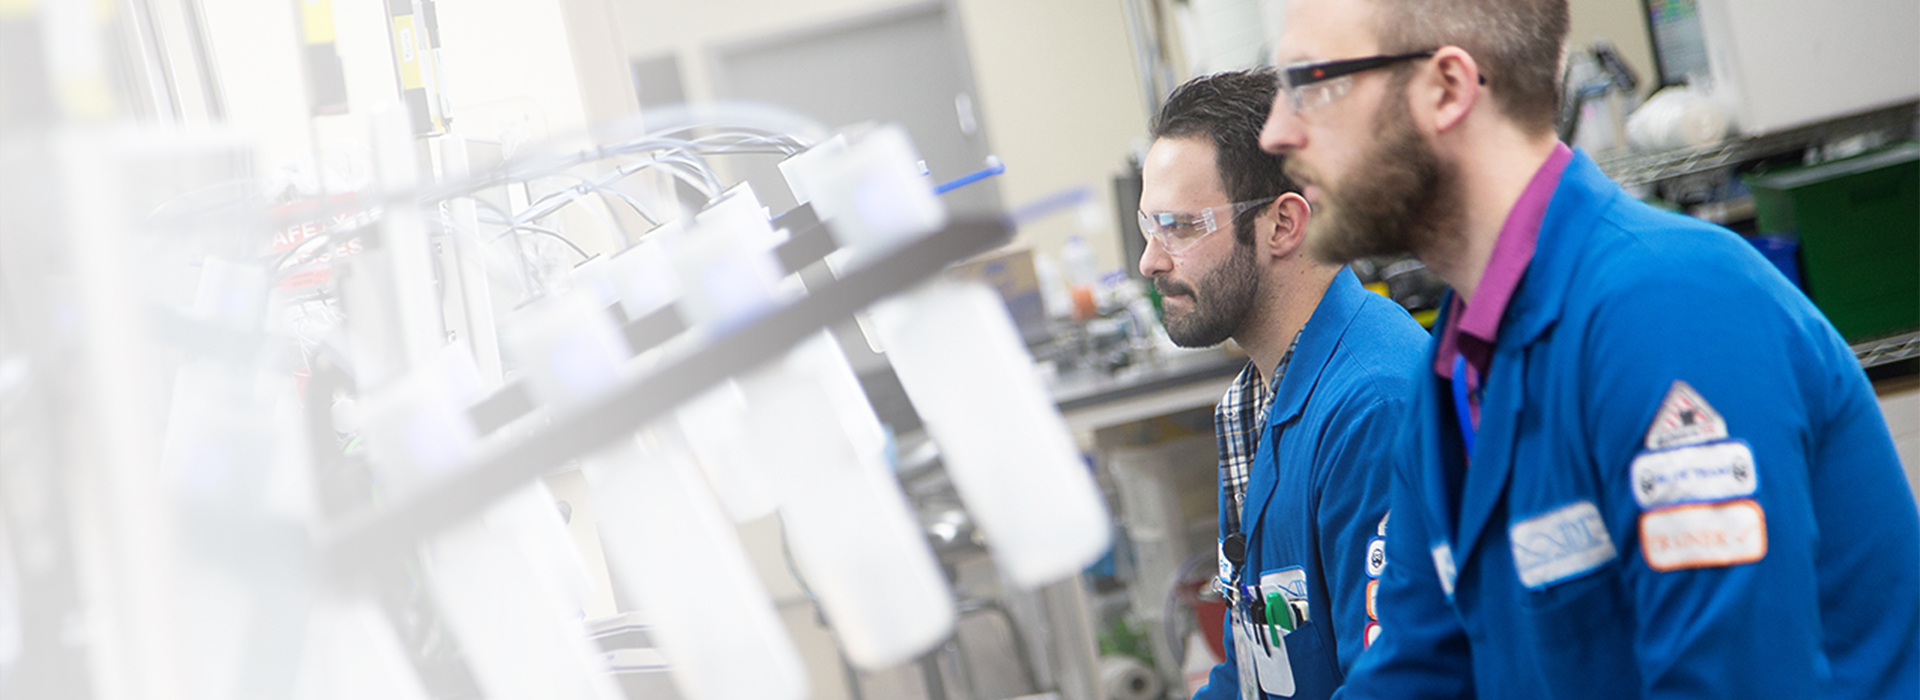 Photograph of Integrated DNA Technologies associates in lab